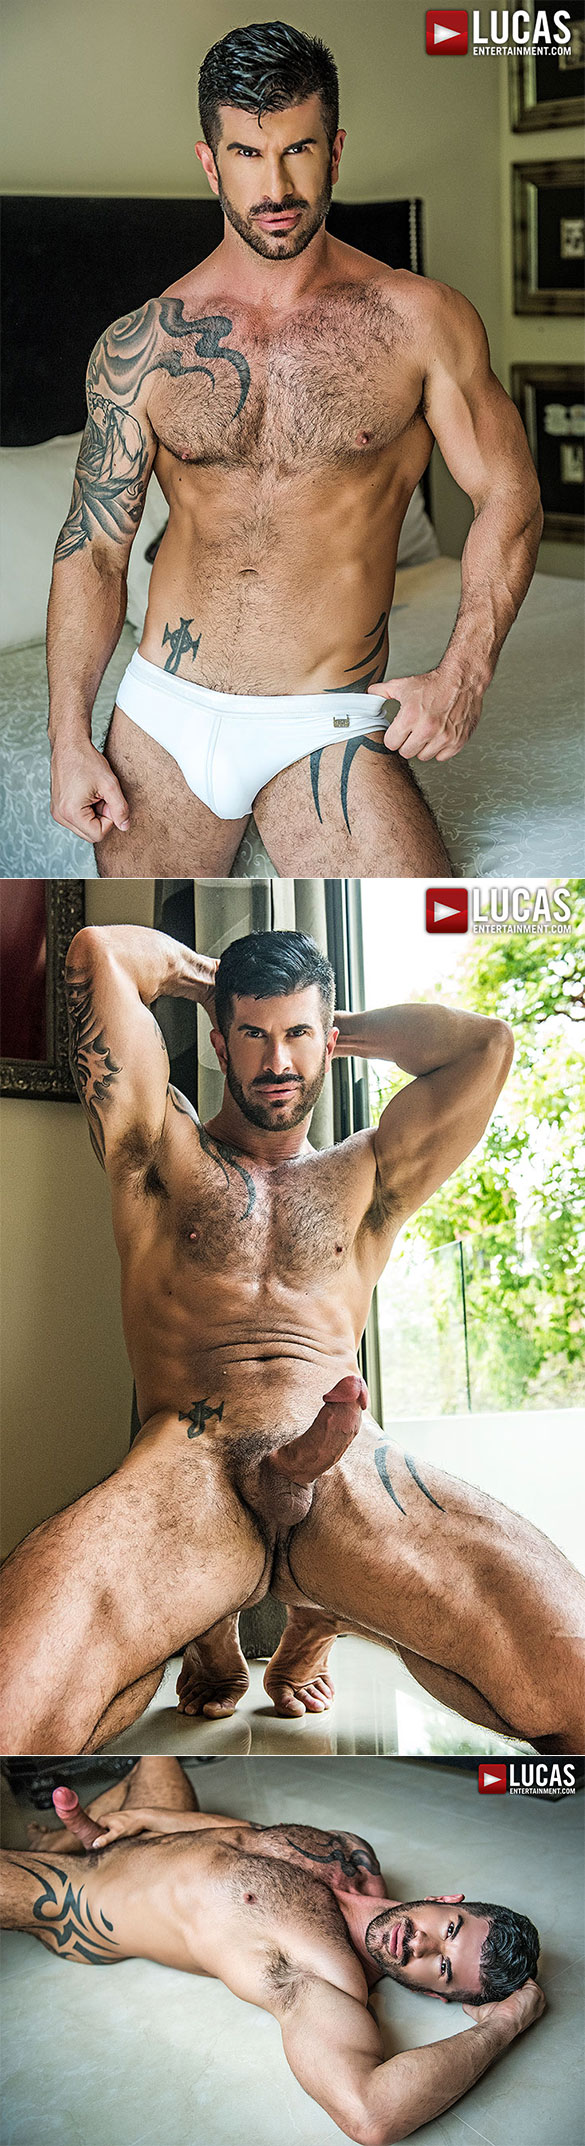 "Lucas Entertainment: Alejandro Castillo and Adam Killian take turns breeding Ruslan Angelo in ""Raw Double Penetrations 06: No Holes Spared"""